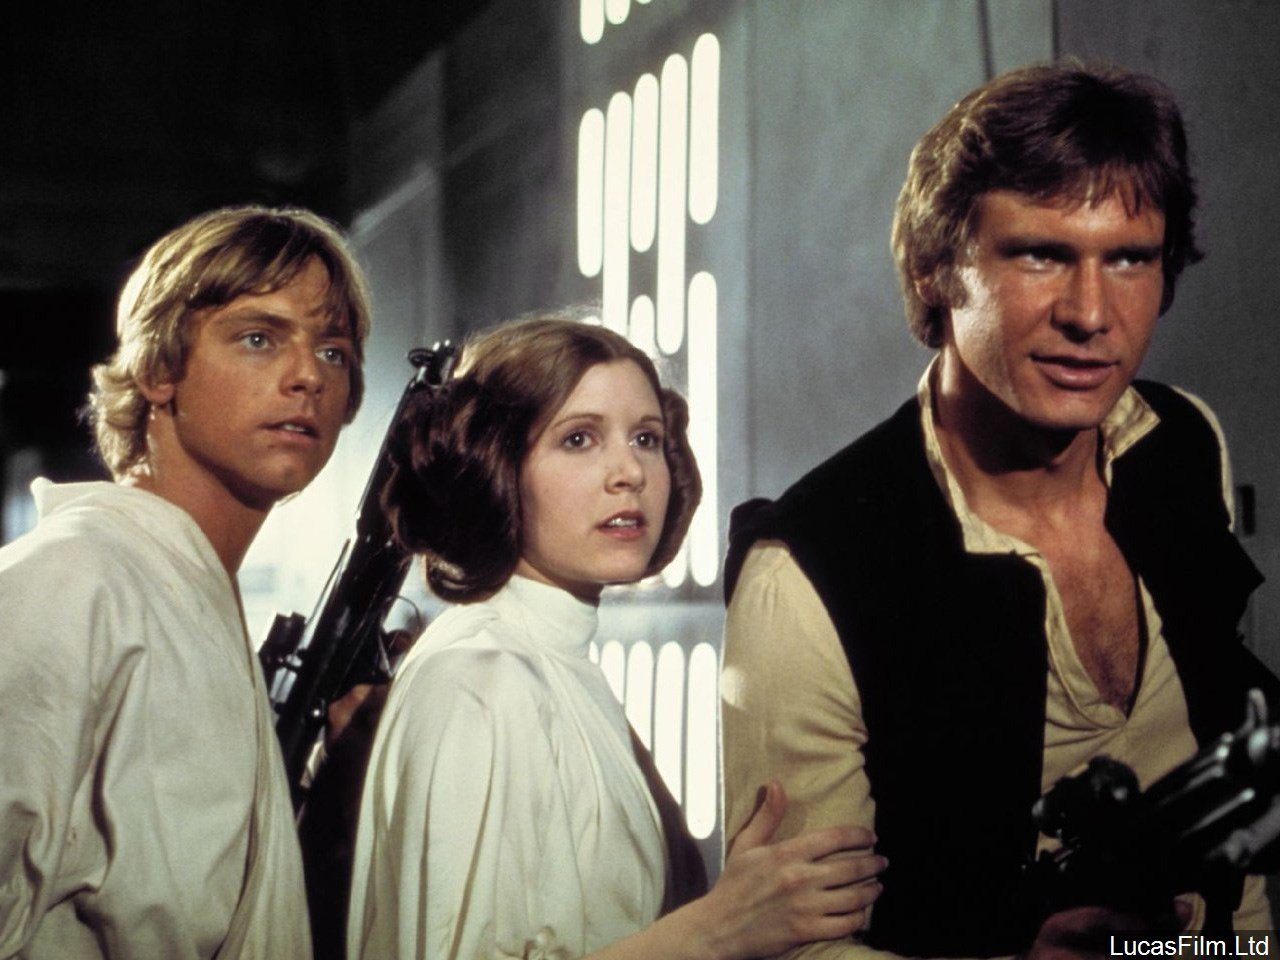 PHOTO: Harrison Ford, Carrie Fisher, and Mark Hamill in Star Wars: Episode IV - A New Hope, Photo Date: 1977